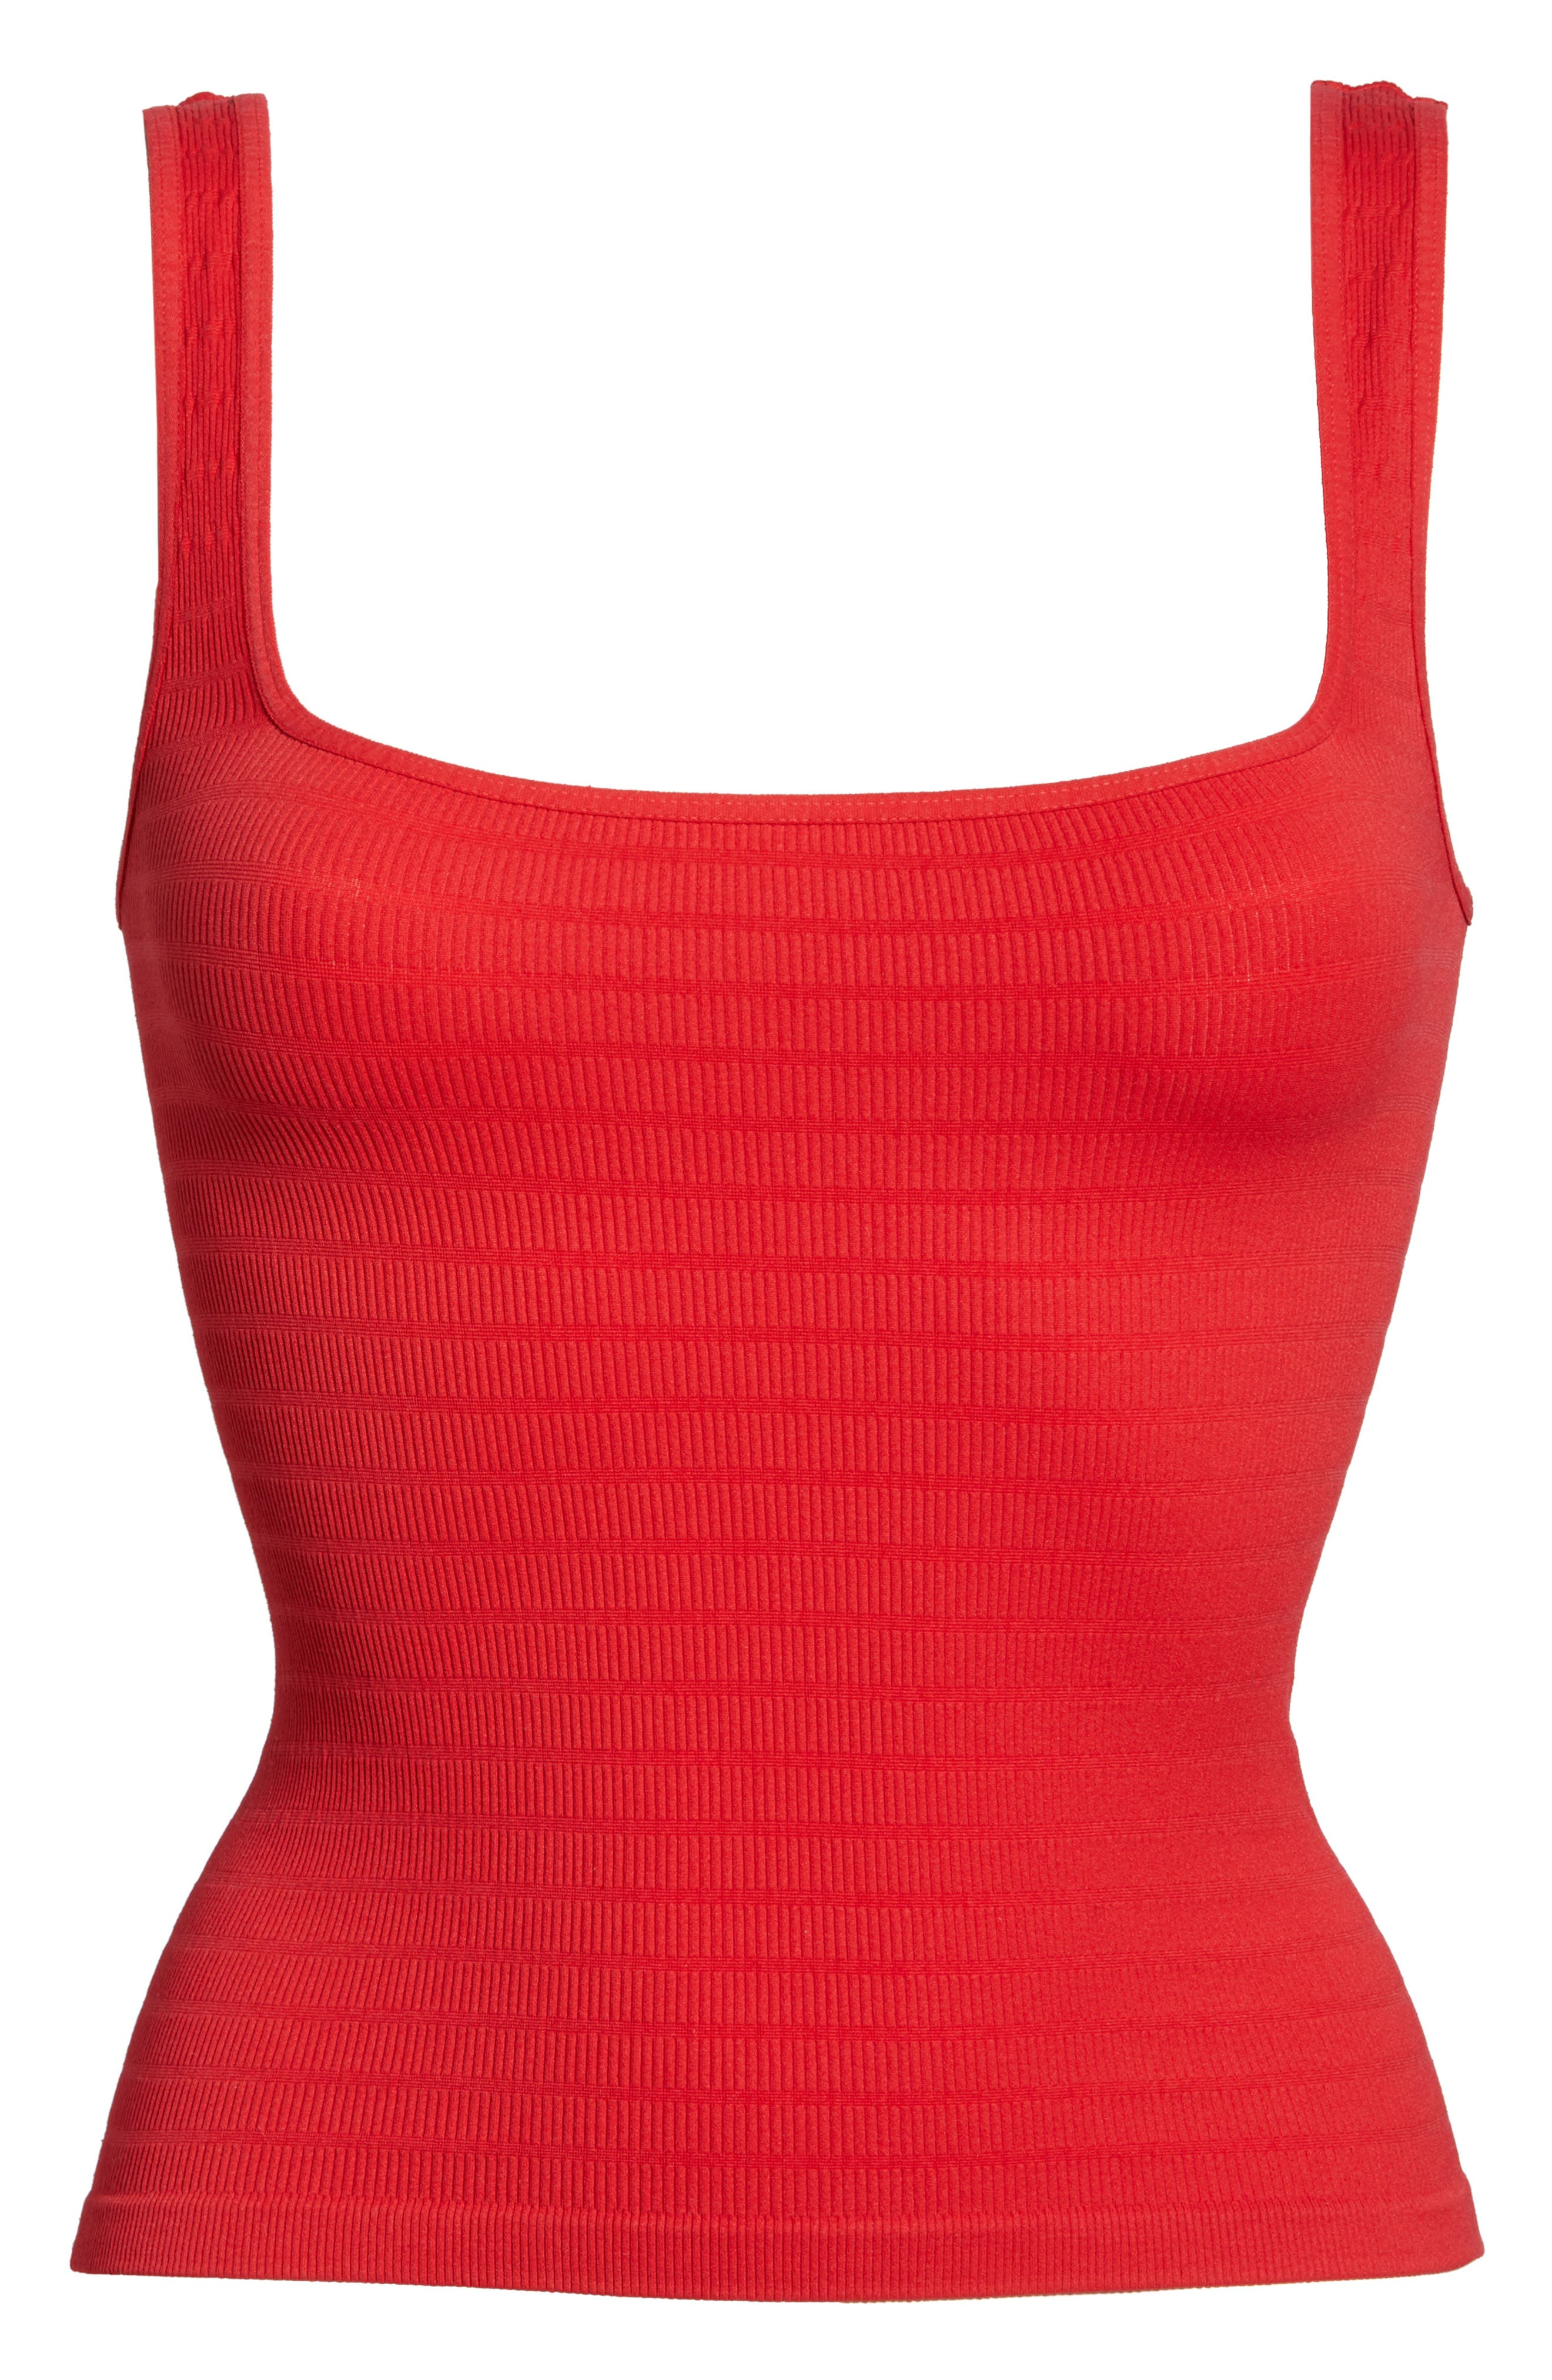 ,                             Intimately FP Square One Seamless Camisole,                             Alternate thumbnail 48, color,                             600